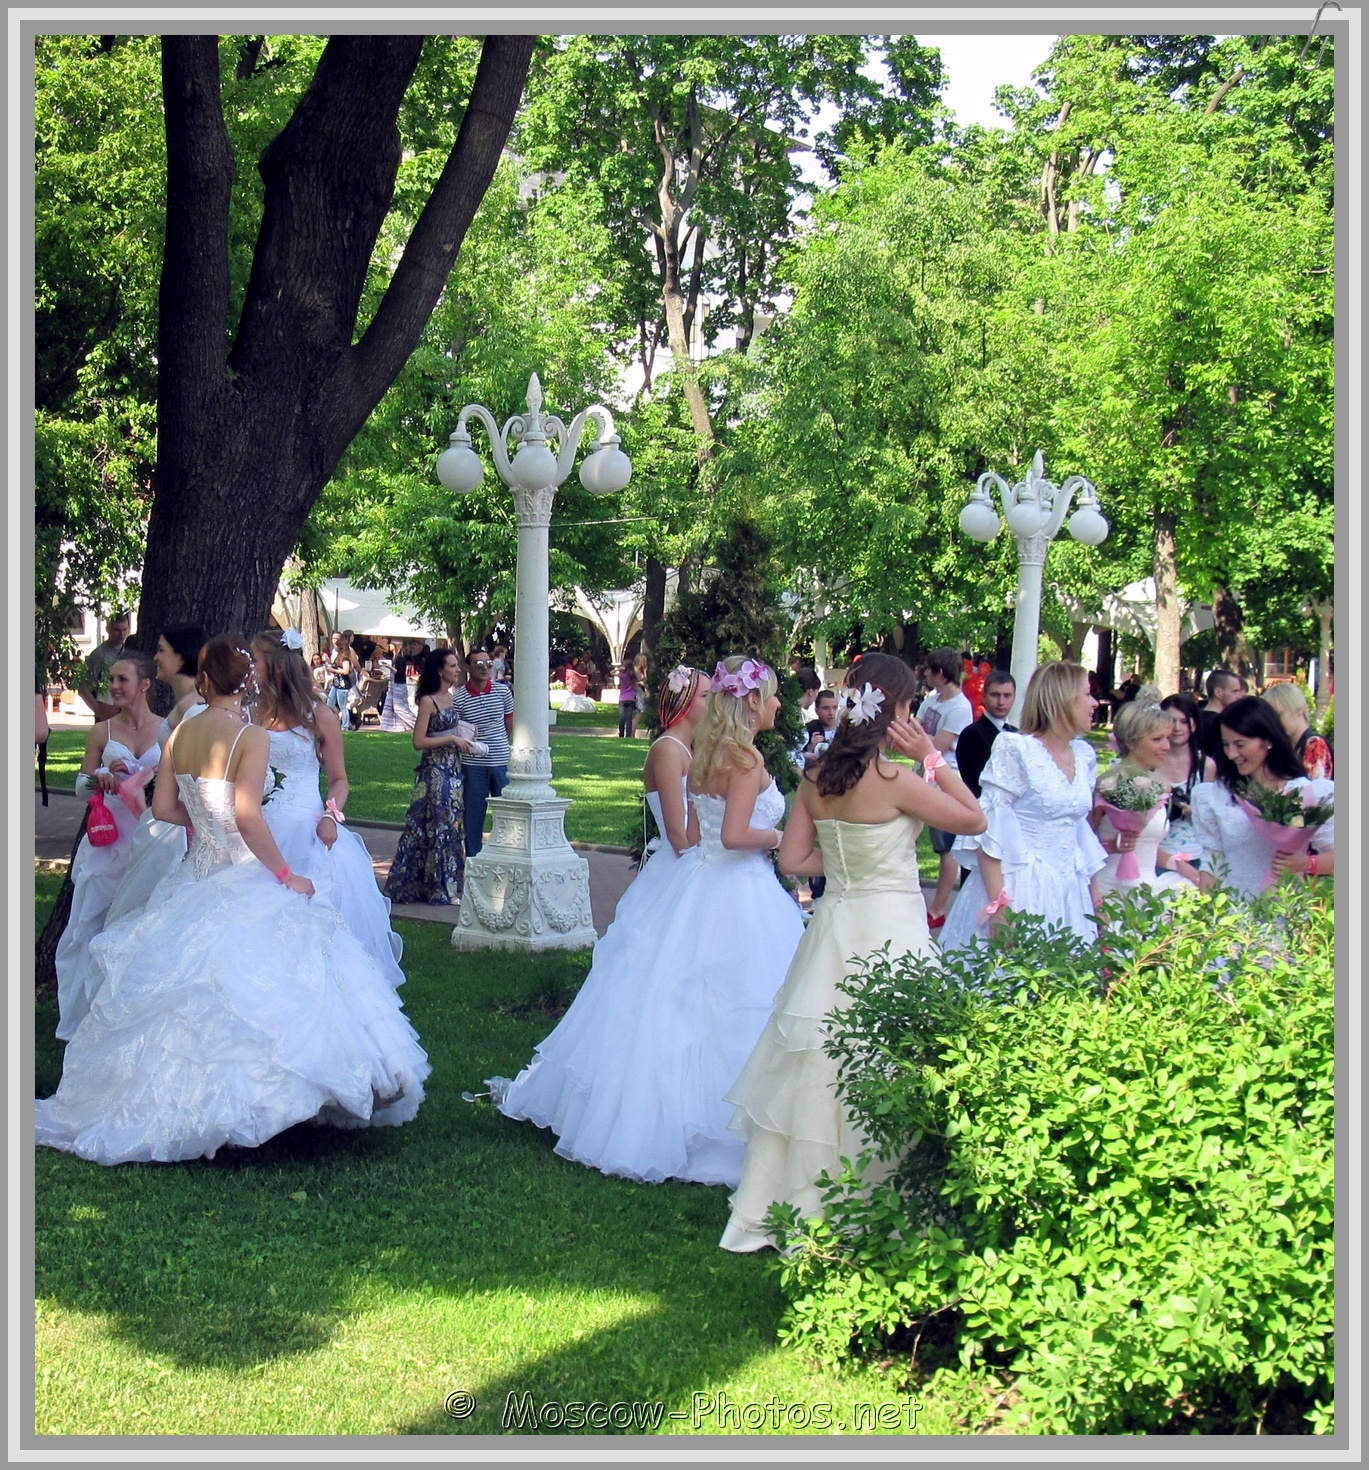 Russian Brides and Moscow Summer Day